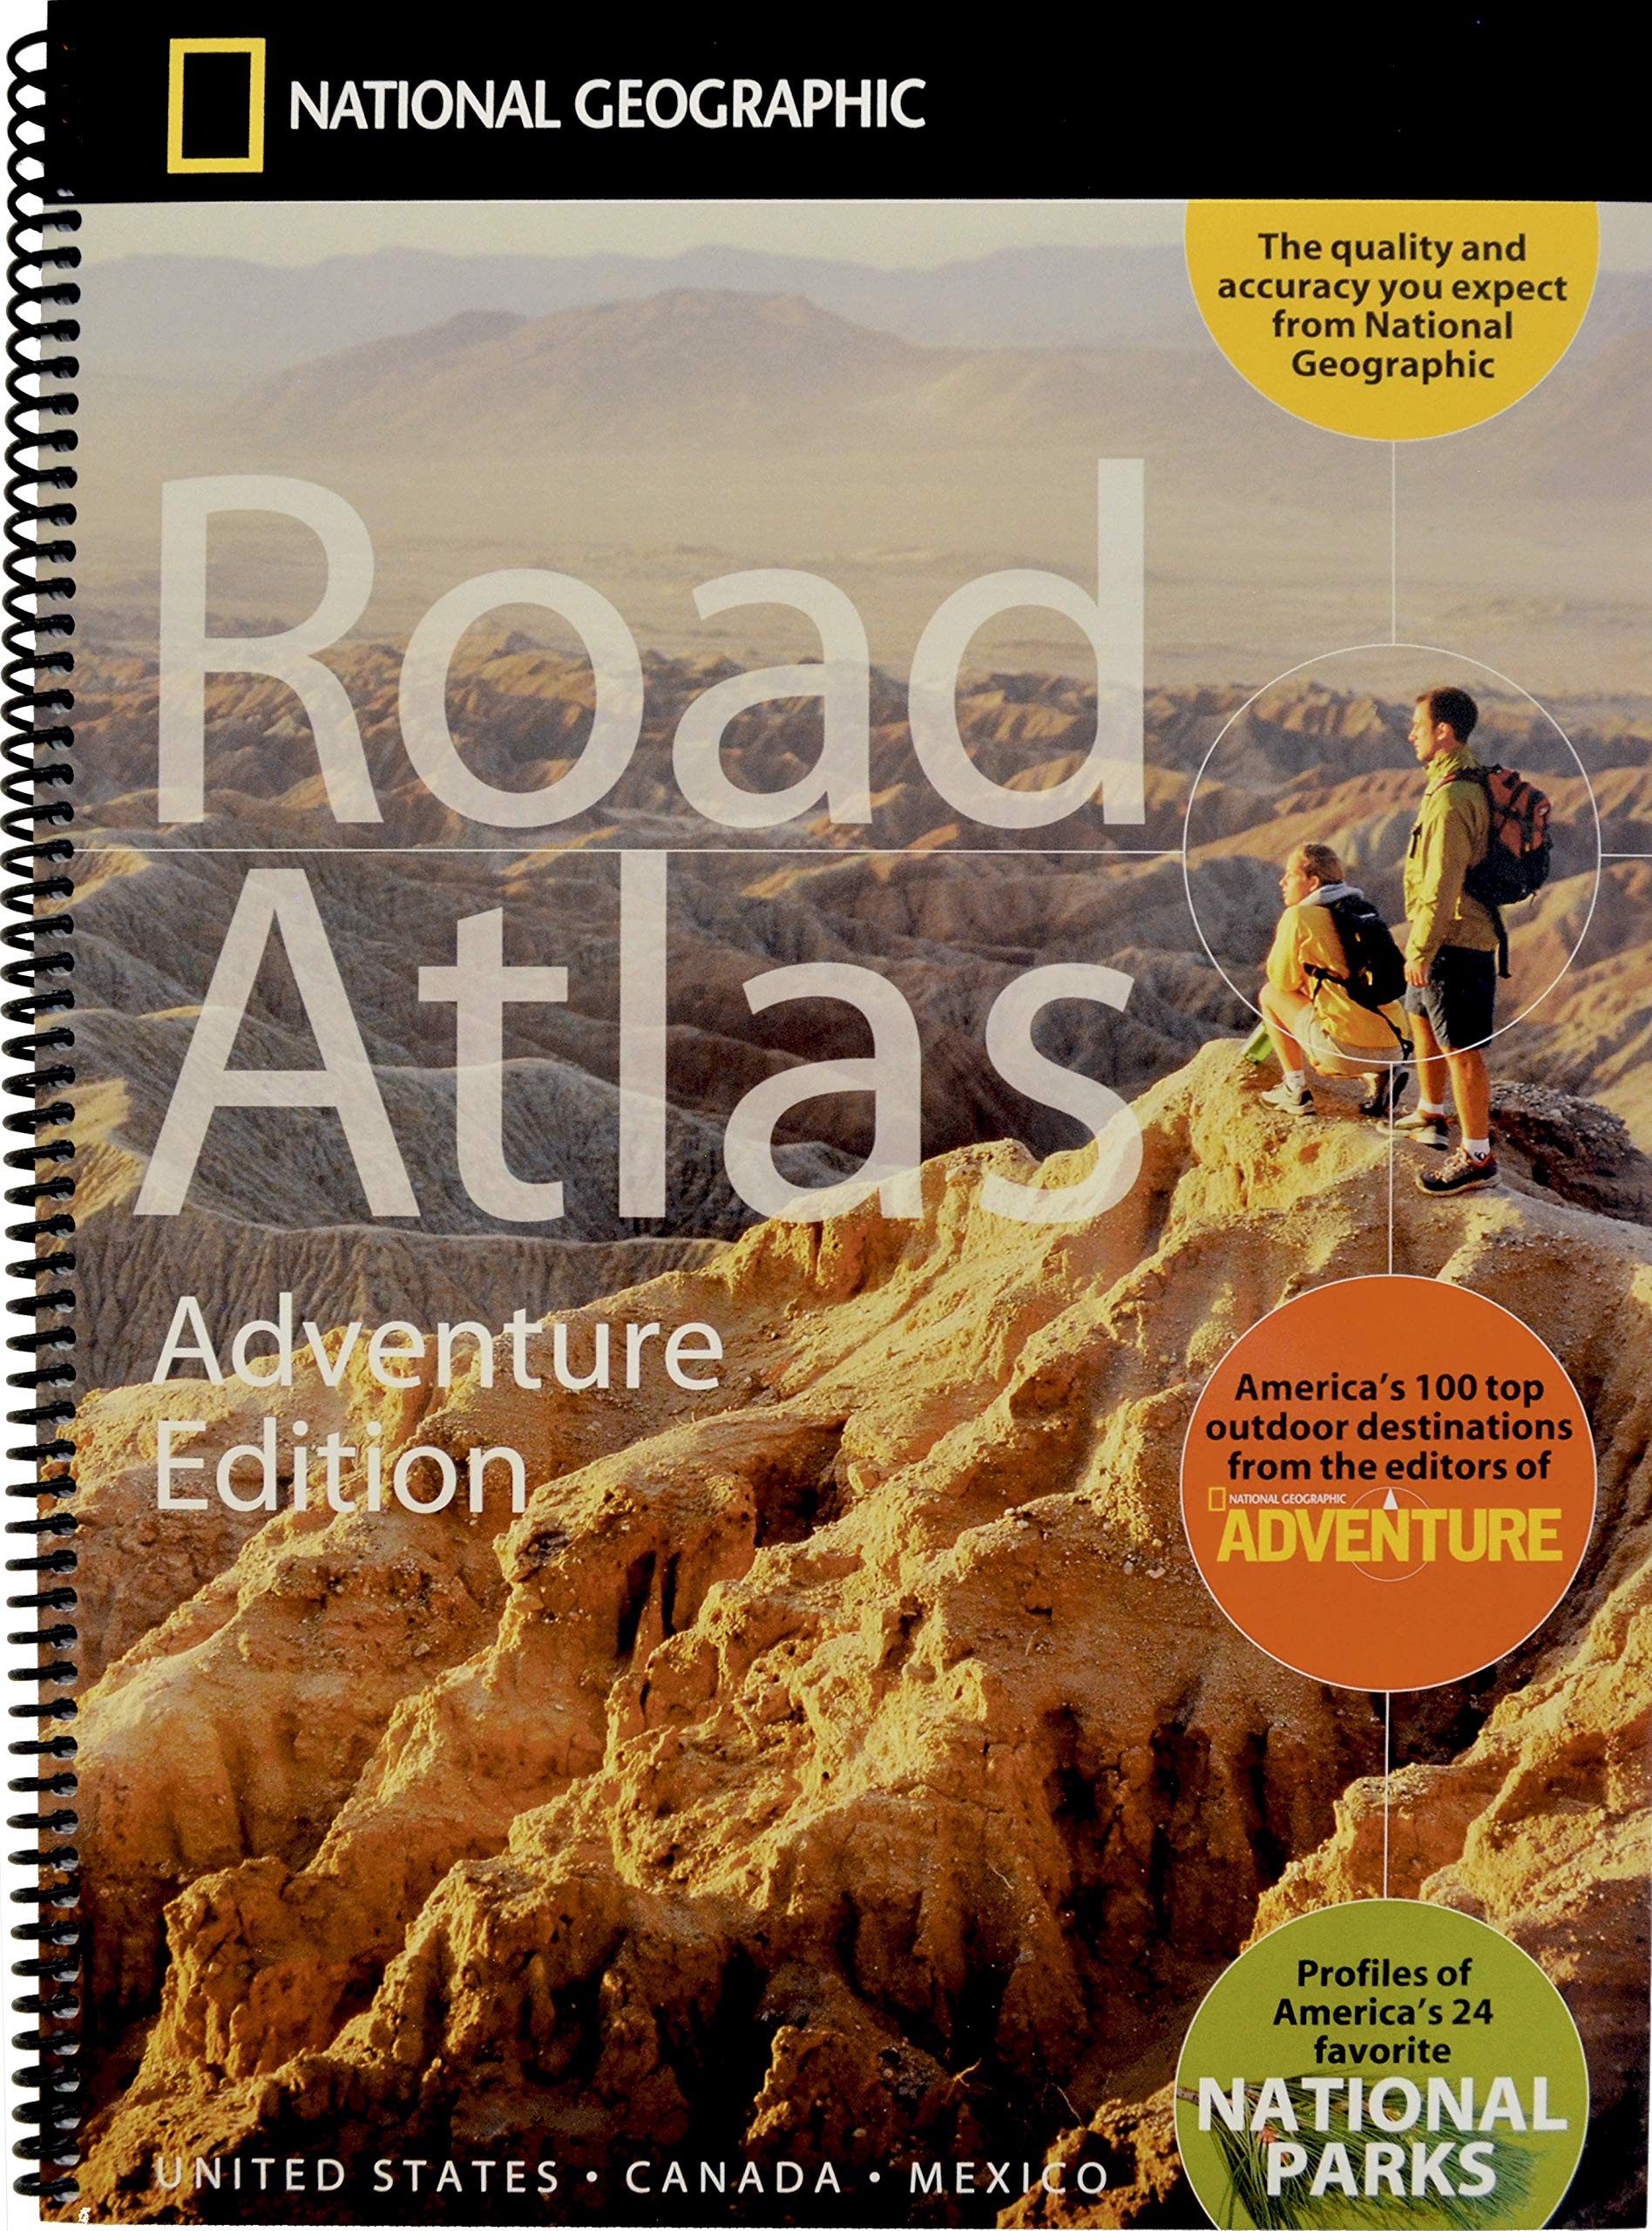 National Geographic Road Atlas 2019: Adventure Edition [United States, Canada, Mexico] (National Geographic Recreation Atlas) by National Geographic